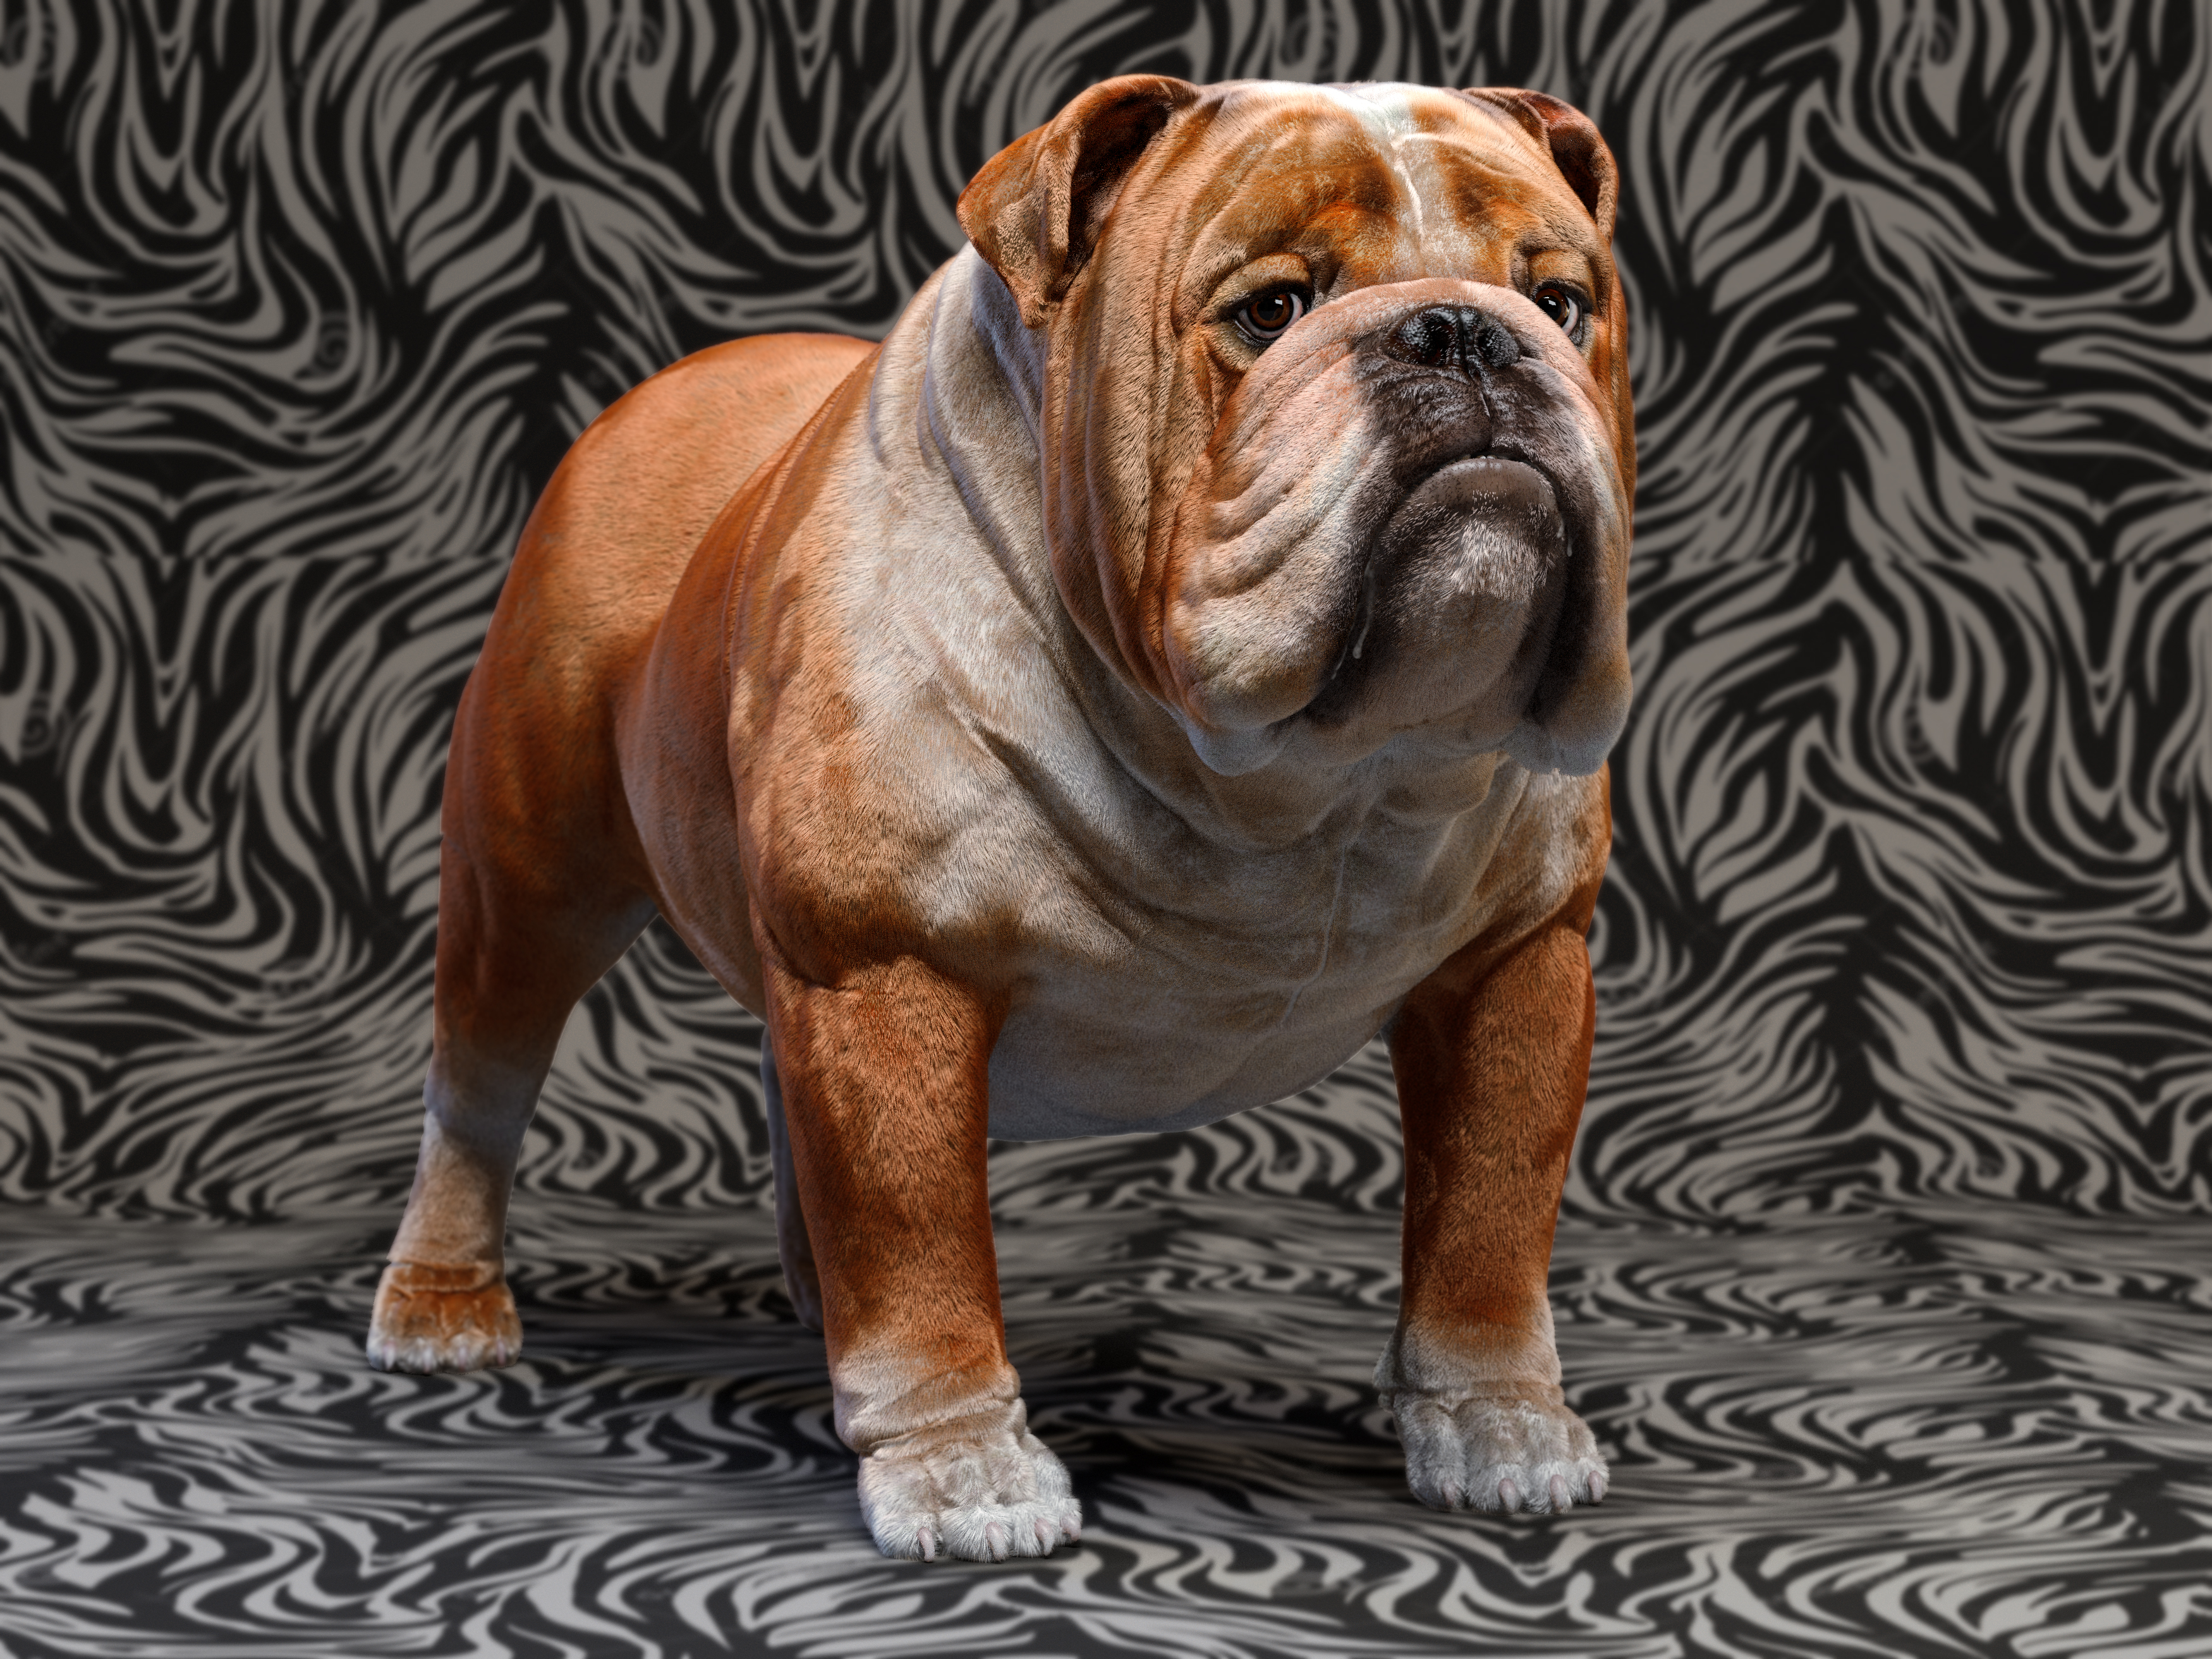 Mustang the bulldog